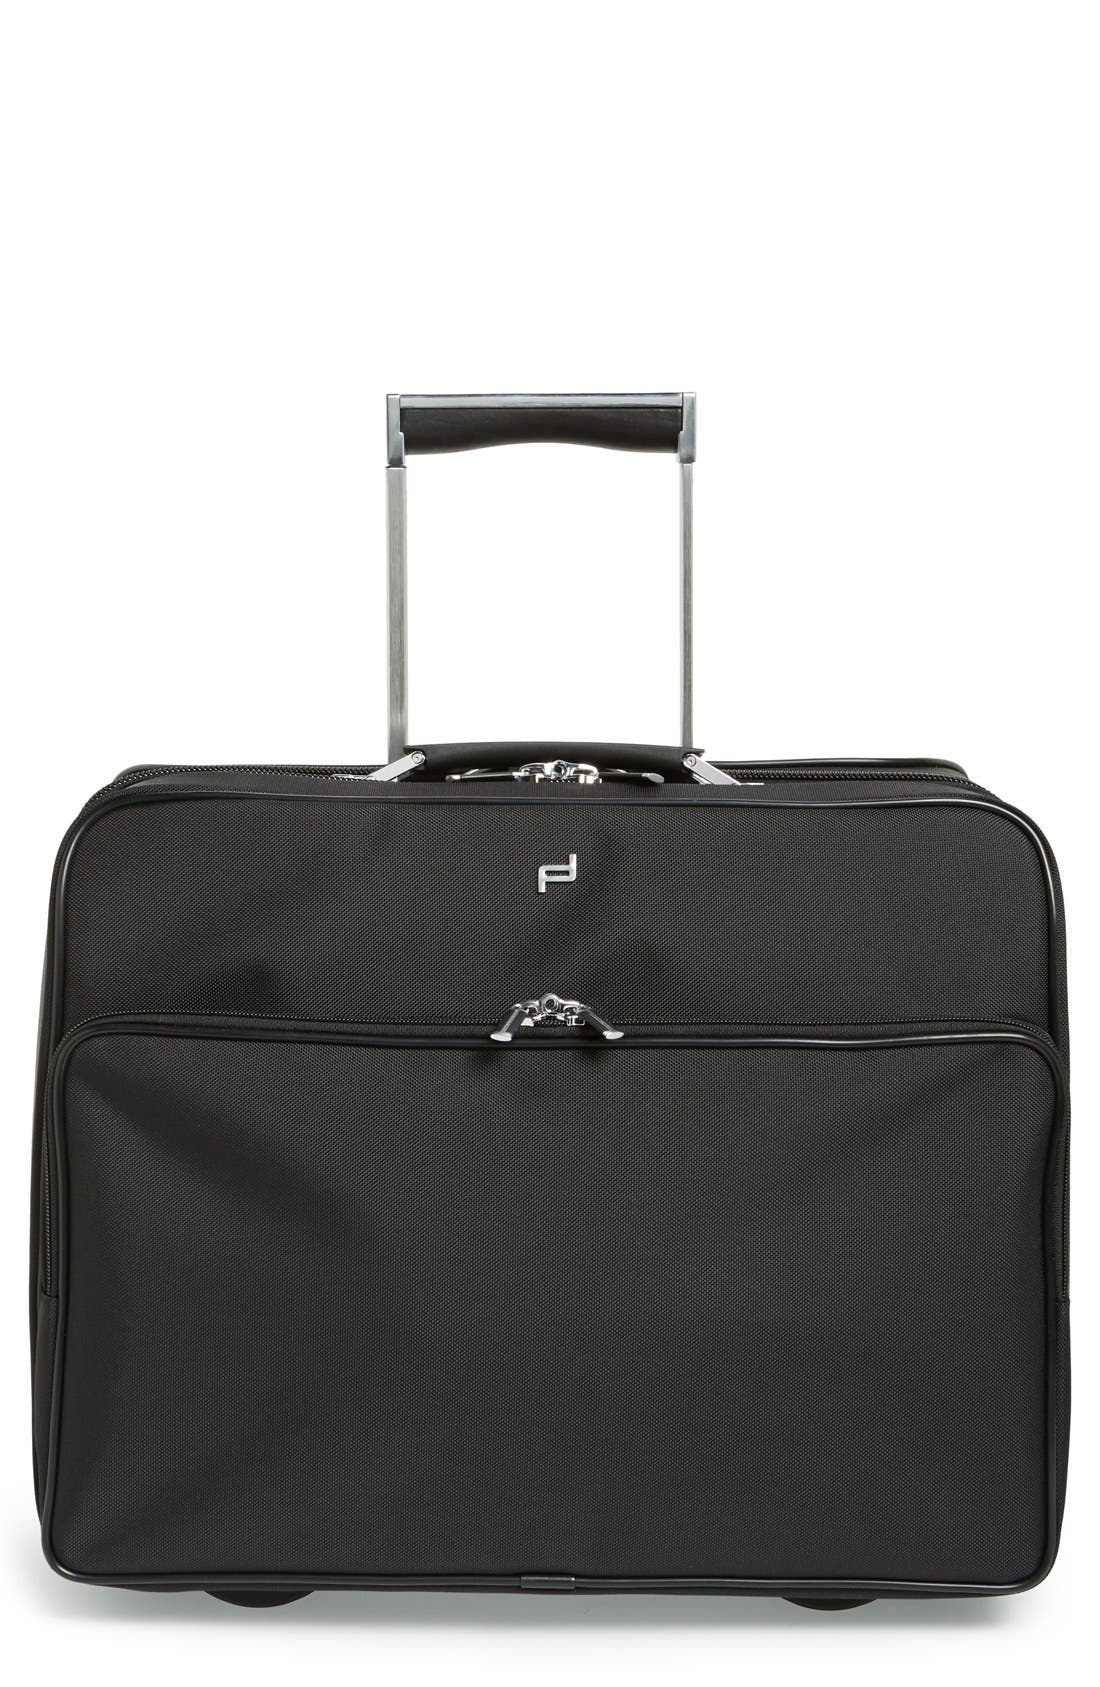 Alternate Image 1 Selected - Porsche Design 'Roadster 3.0' Wheeled Carry-On (18-Inch)